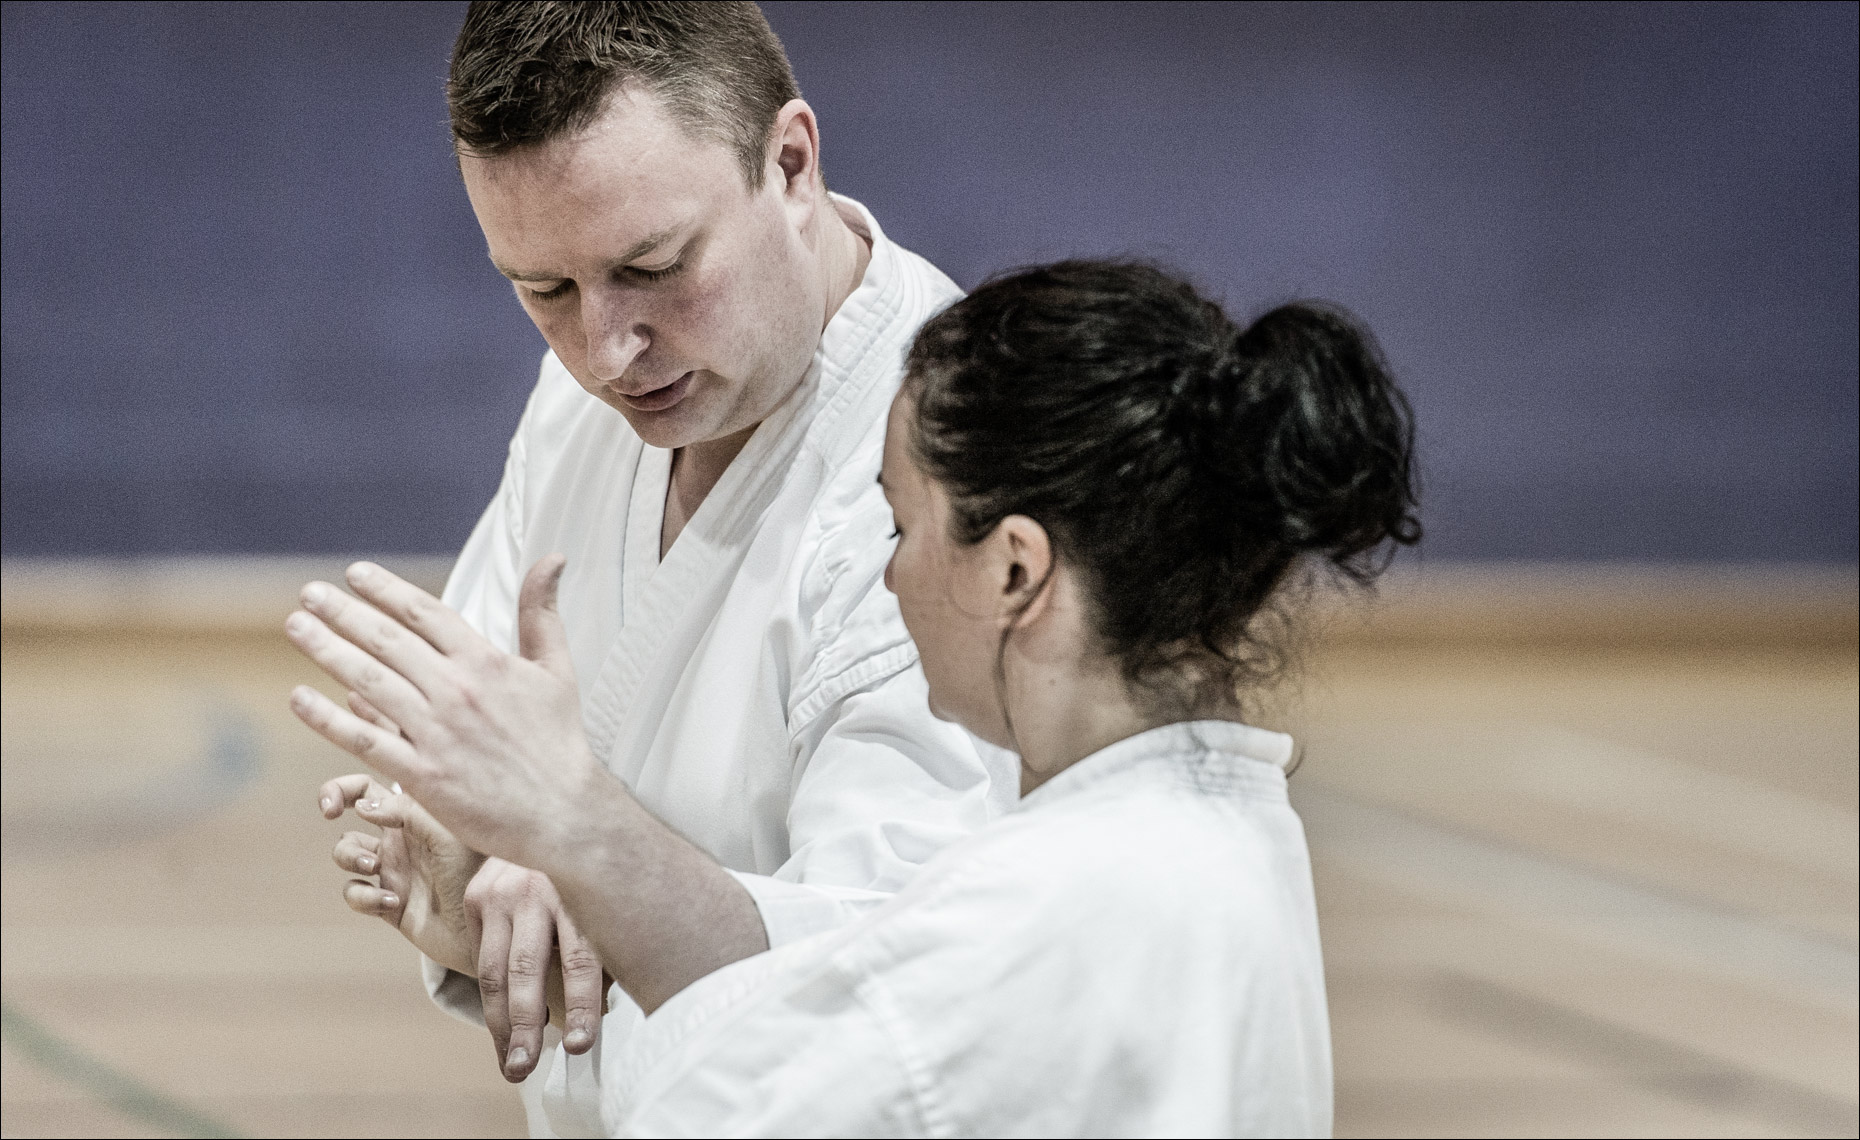 013-karate-02430Glasgow Caledonian University Paul Hampton Photographer